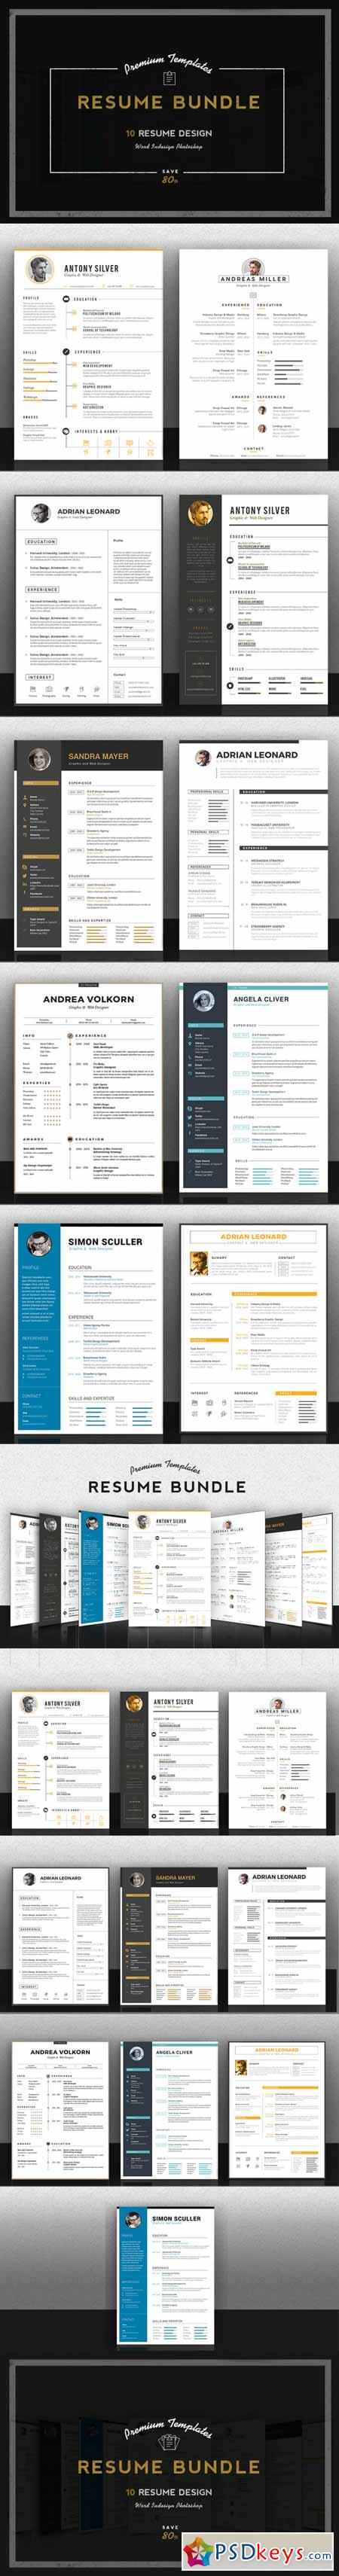 premium resume bundle photoshop vector premium resume bundle 371242